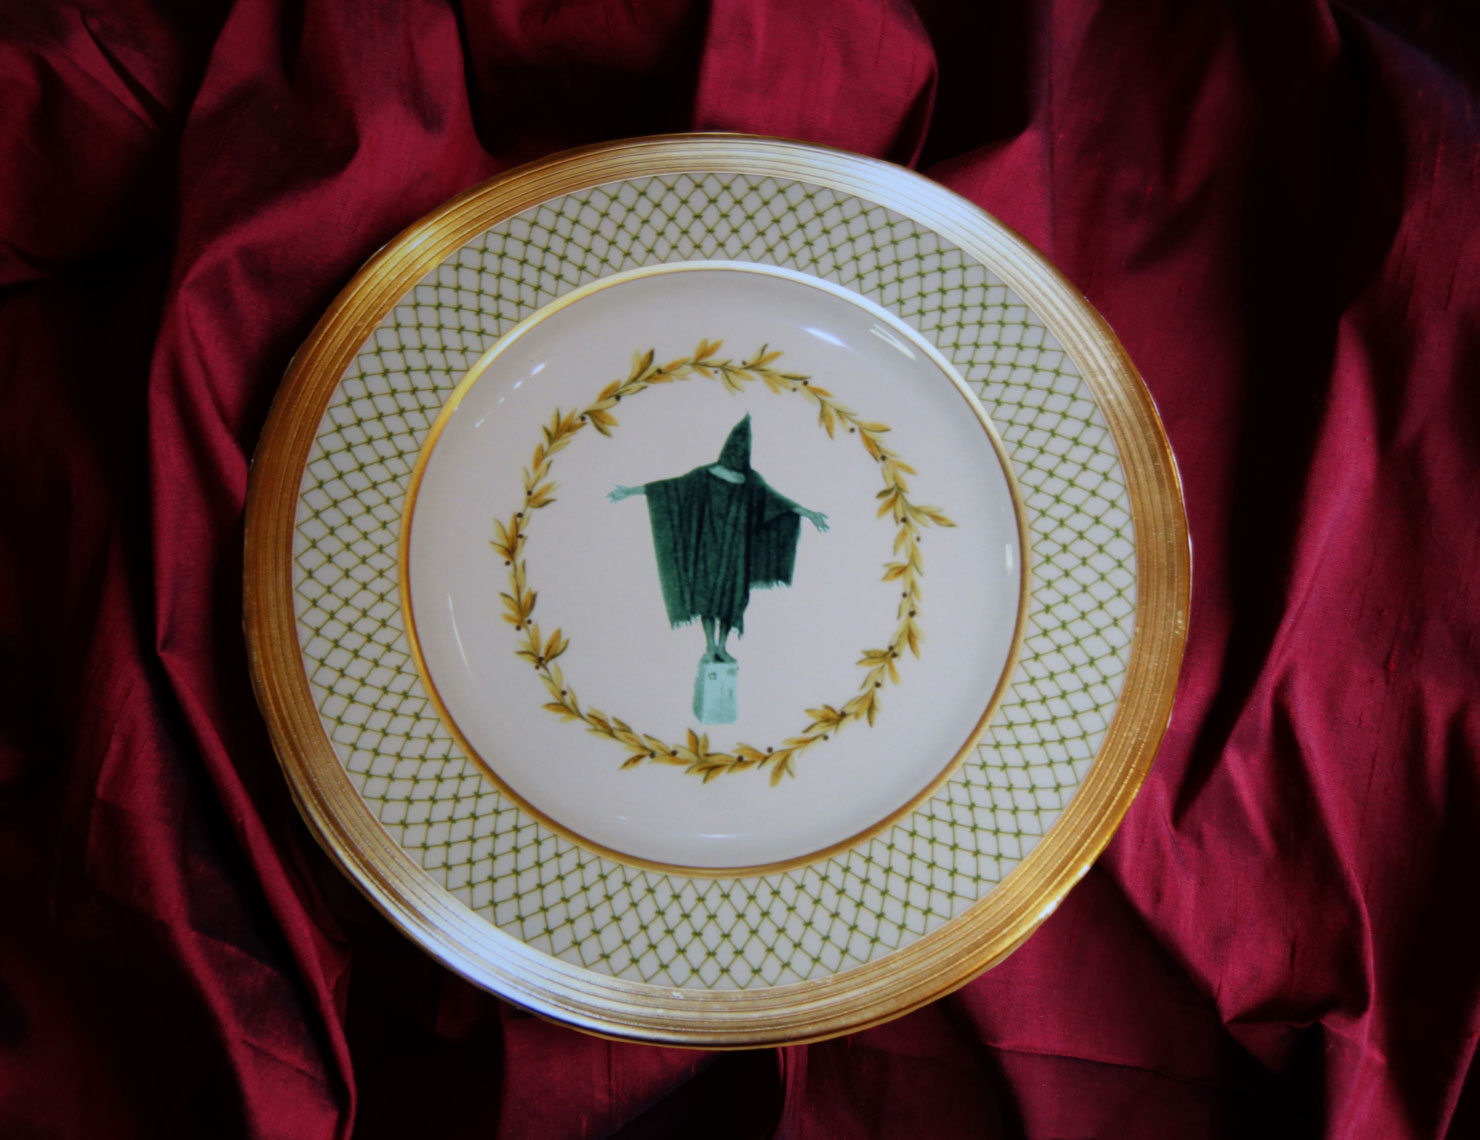 web-new-2Abu-Graib-GW-Bush-Dinner-Plate